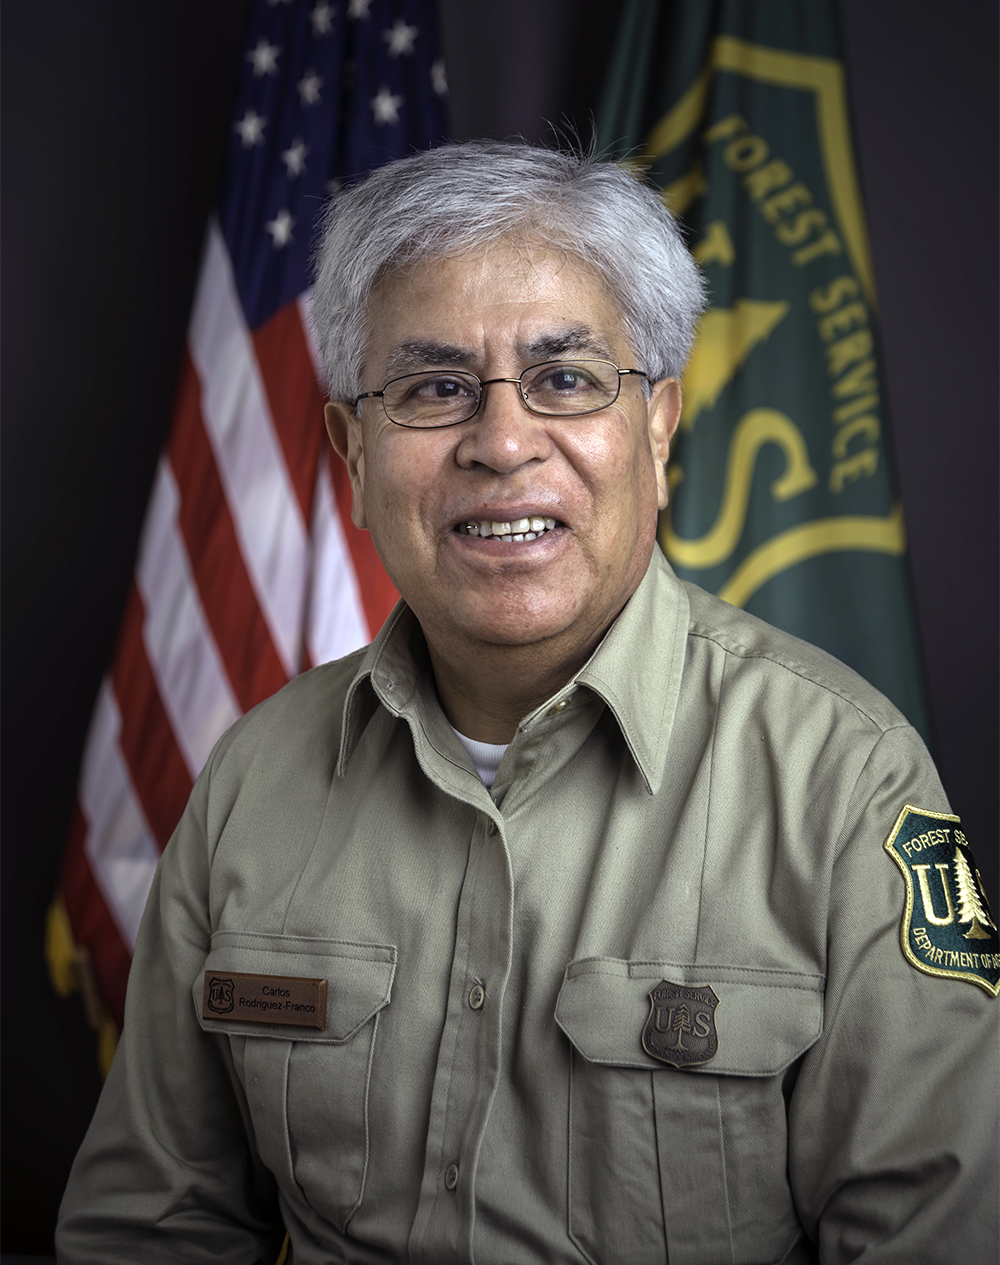 A photo of Carlos Rodriguez-Franco, Deputy Chief, Research and Development